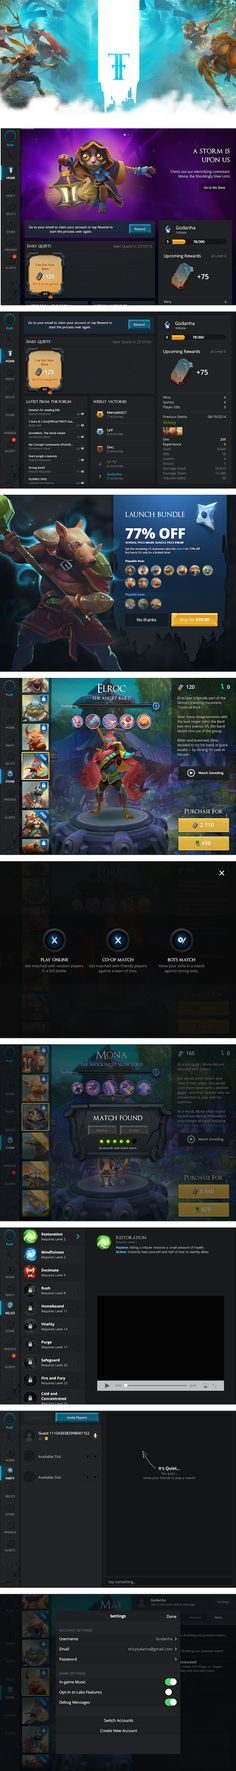 Fates Forever iPad MOBA UI Reminds me of painterly style Game Gui, Game Icon, Game Ui Design, Web Design, Graphic Design, Game Props, Game Interface, Mobile Art, Game Concept